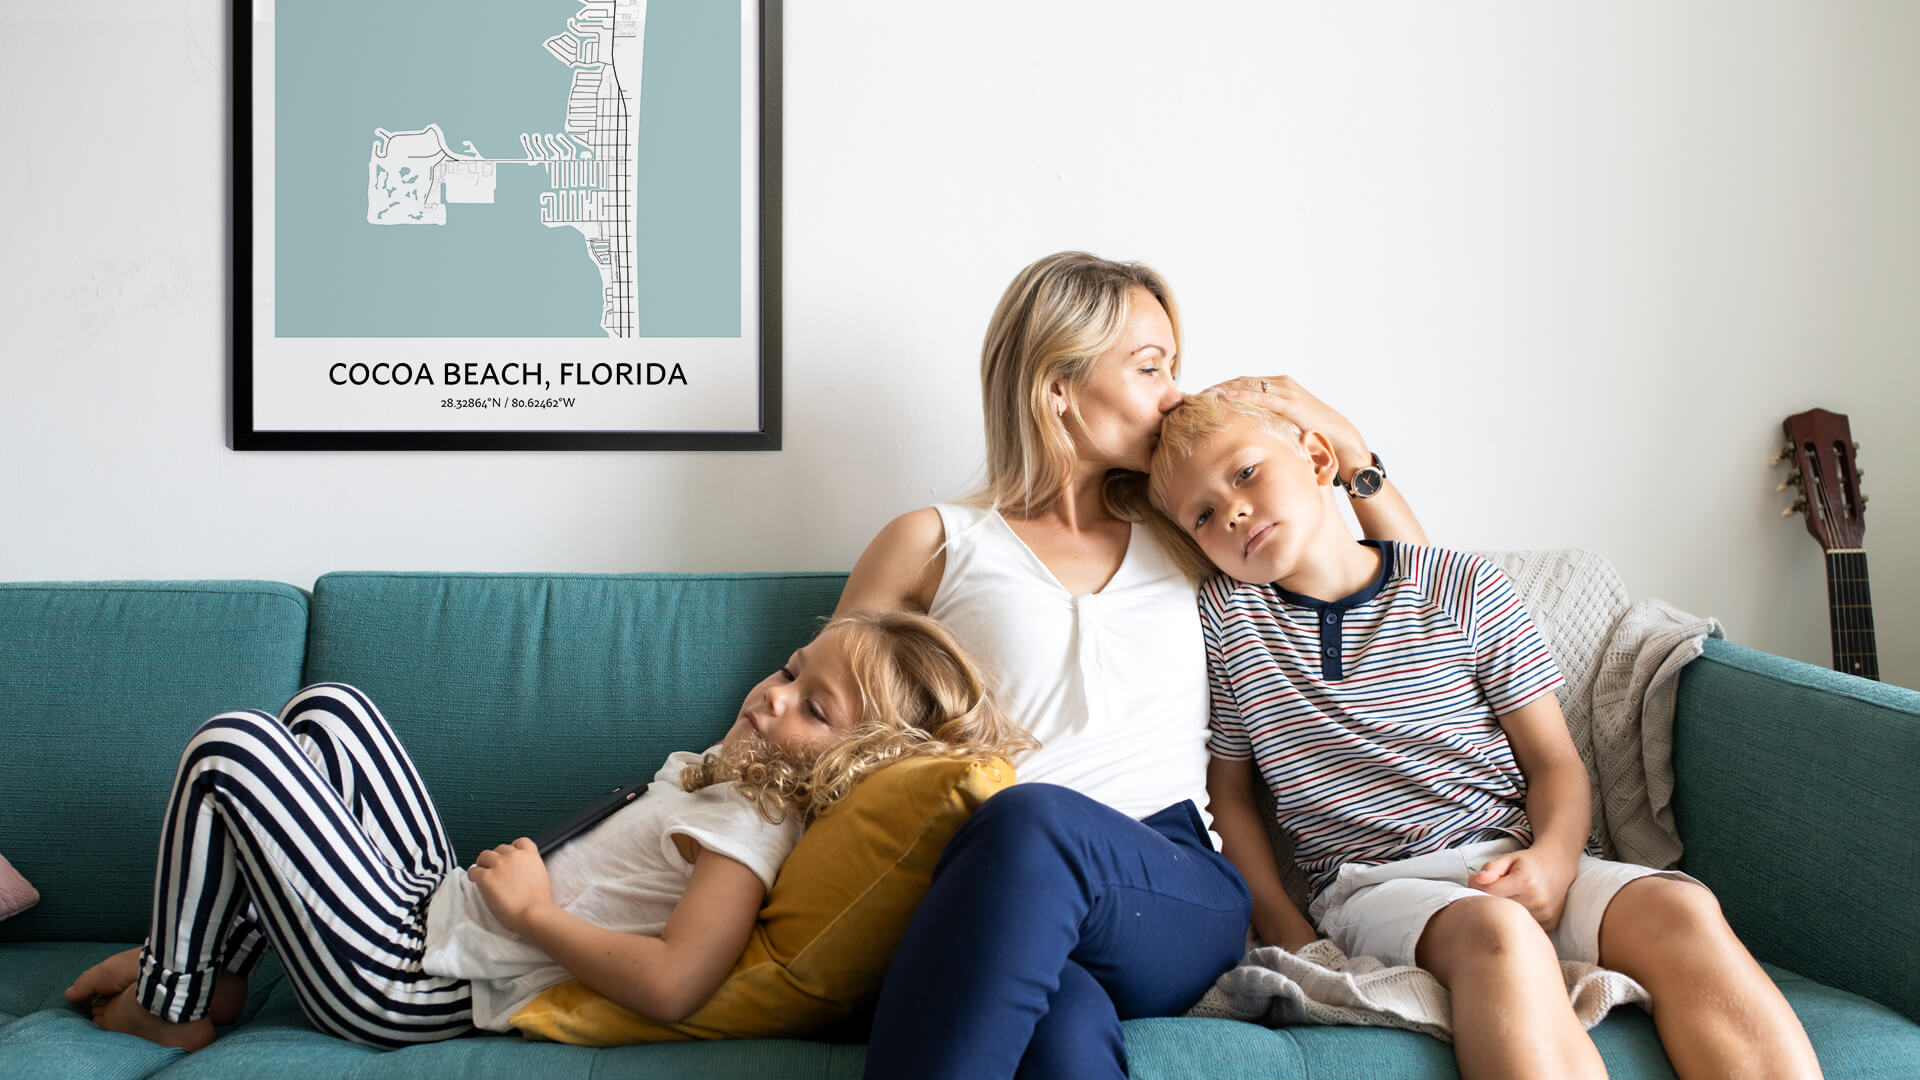 Cocoa Beach map poster